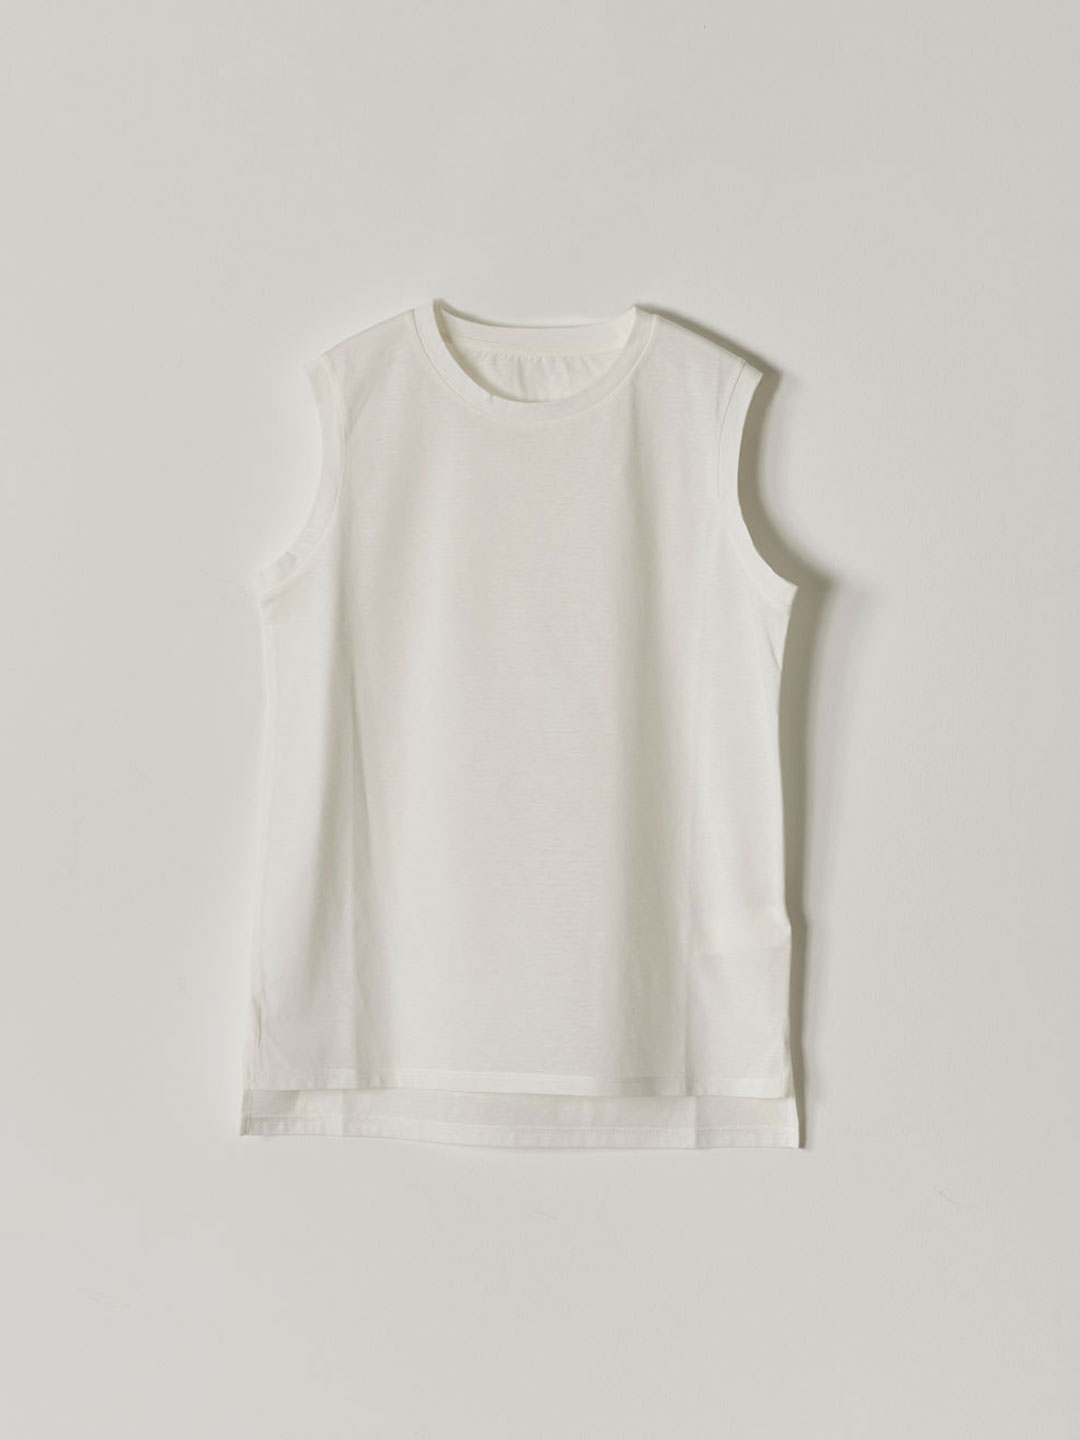 No 0236  High Gauge Cotton Sleeveless Tee - White